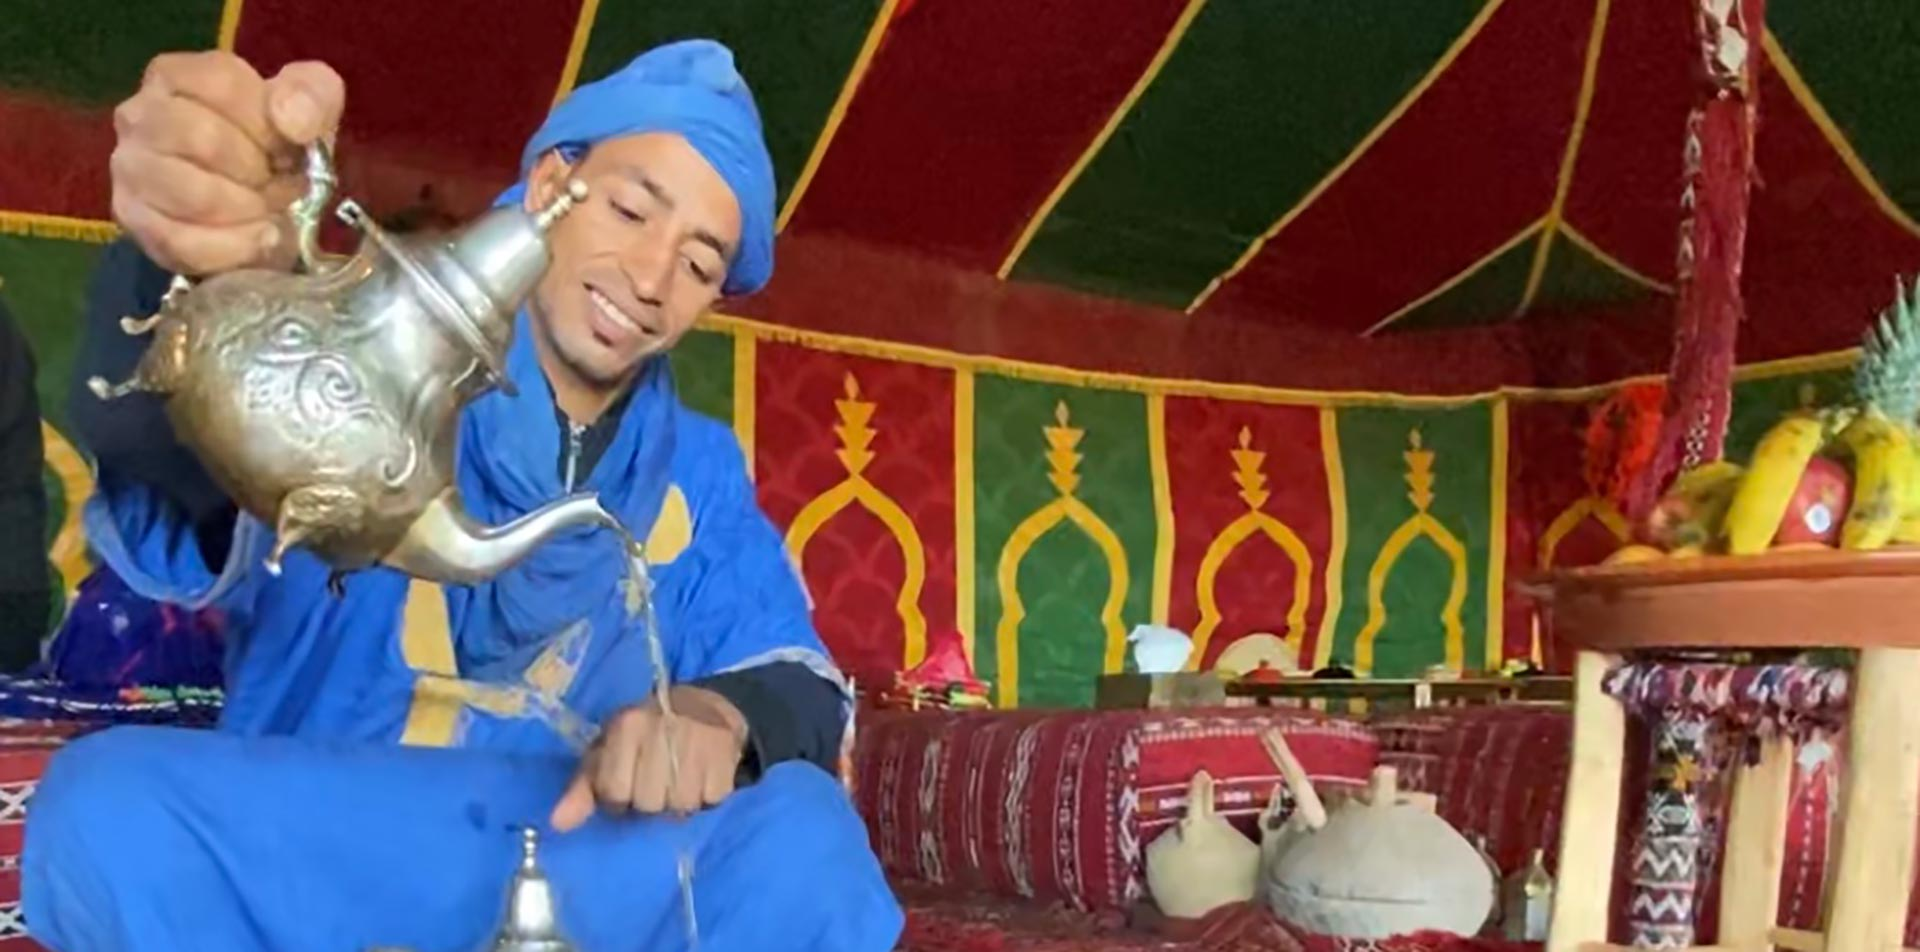 Africa Morocco Sahara Desert colorful Berber encampment Blue Man smiling pouring mint tea - luxury vacation destinations